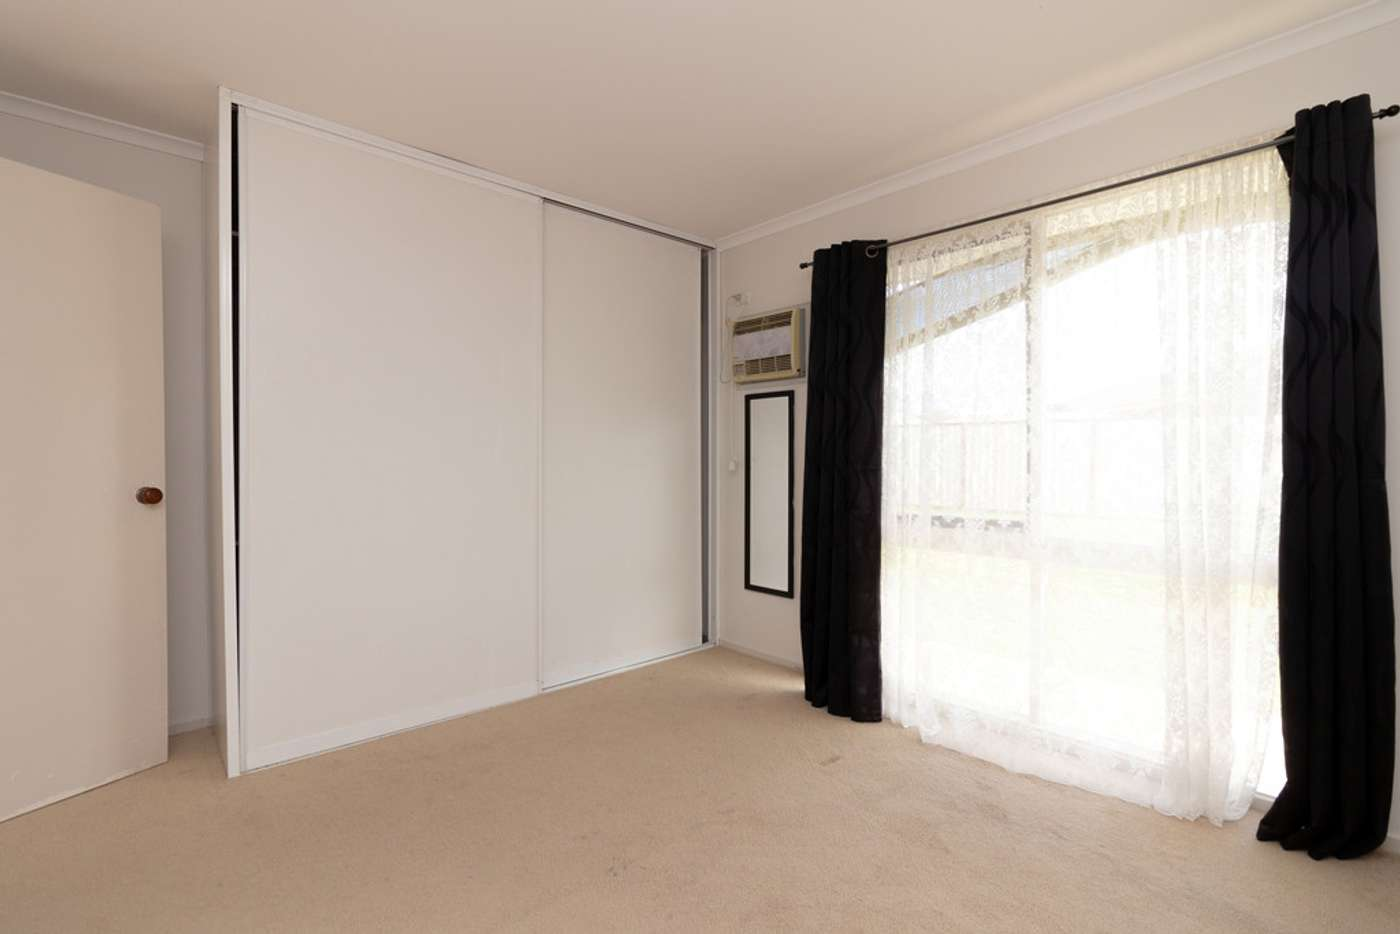 Seventh view of Homely house listing, 2 Gianni Court, Keysborough VIC 3173